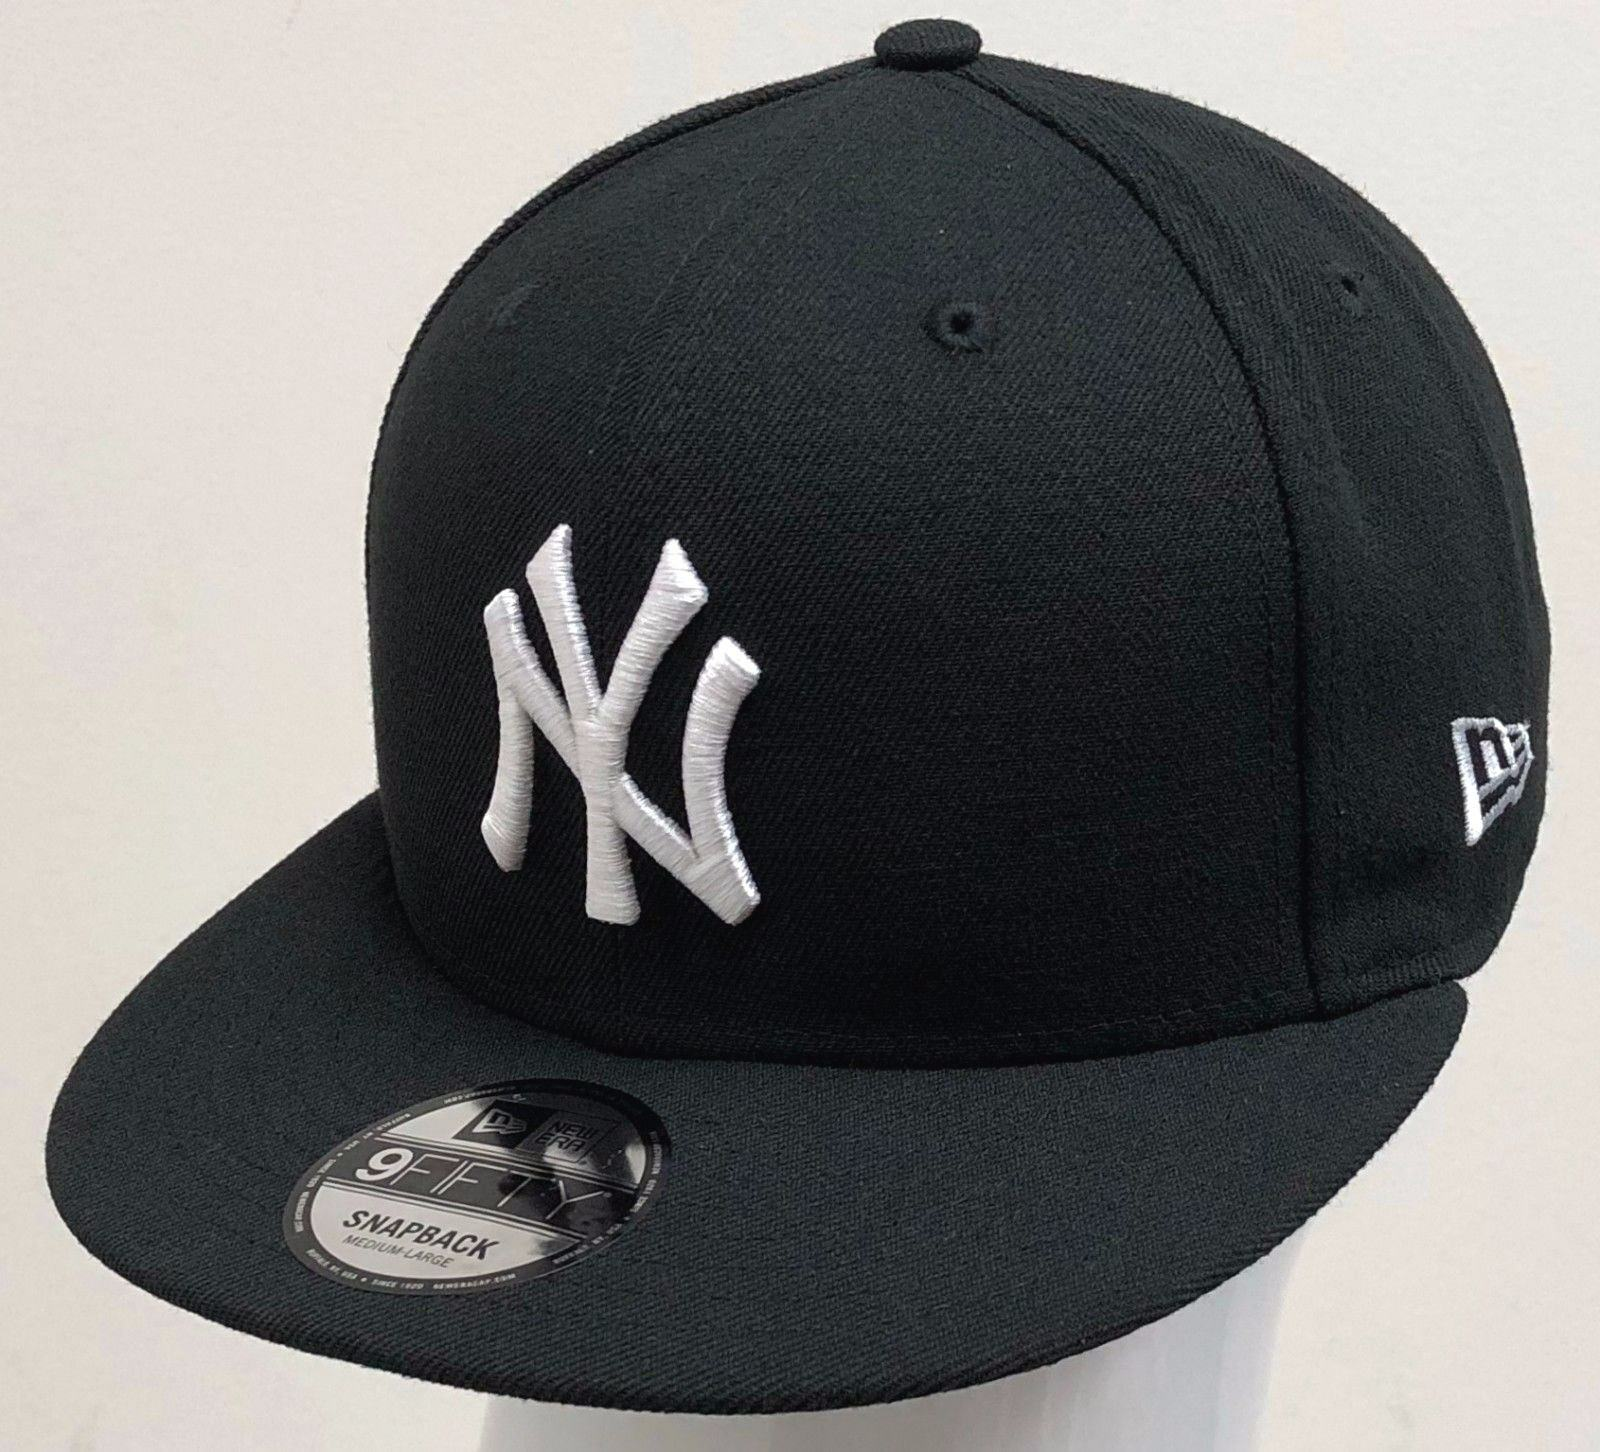 check out 5e6da 3bcec coupon code for 2018 boston red sox new era mlb rapid 39thirty cap  9myq7zc4p4a13 94fad d3c82  usa new snapback era mlb 9fifty snapback new new  york yankees ...